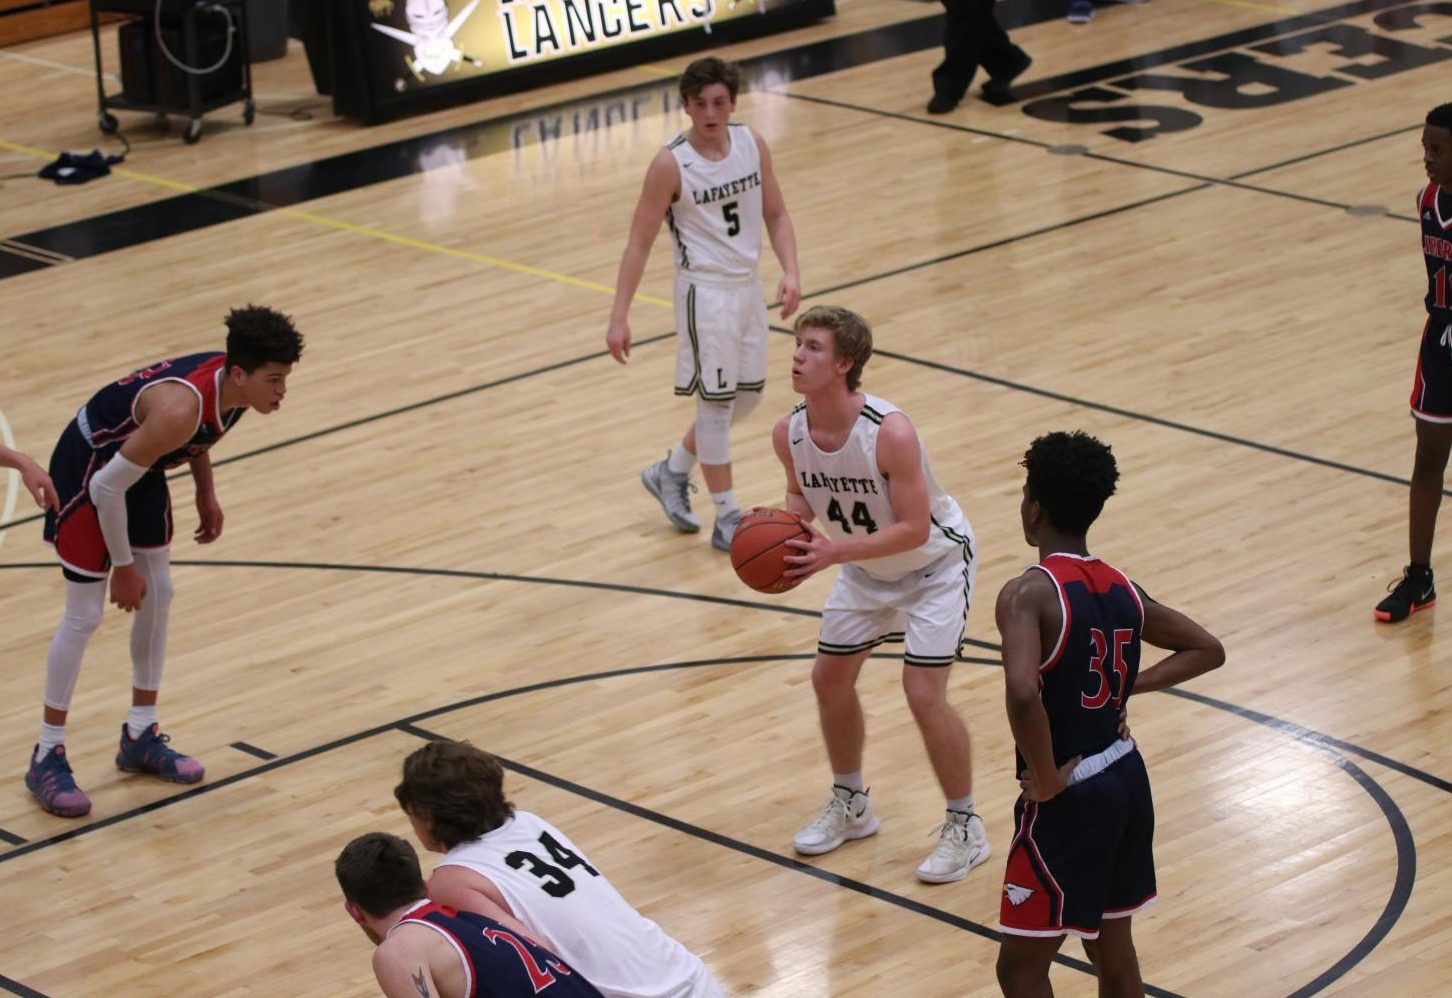 On Jan. 15, junior Mason Hewlett prepares to shoot a free-throw in a game against Wentzville Liberty.